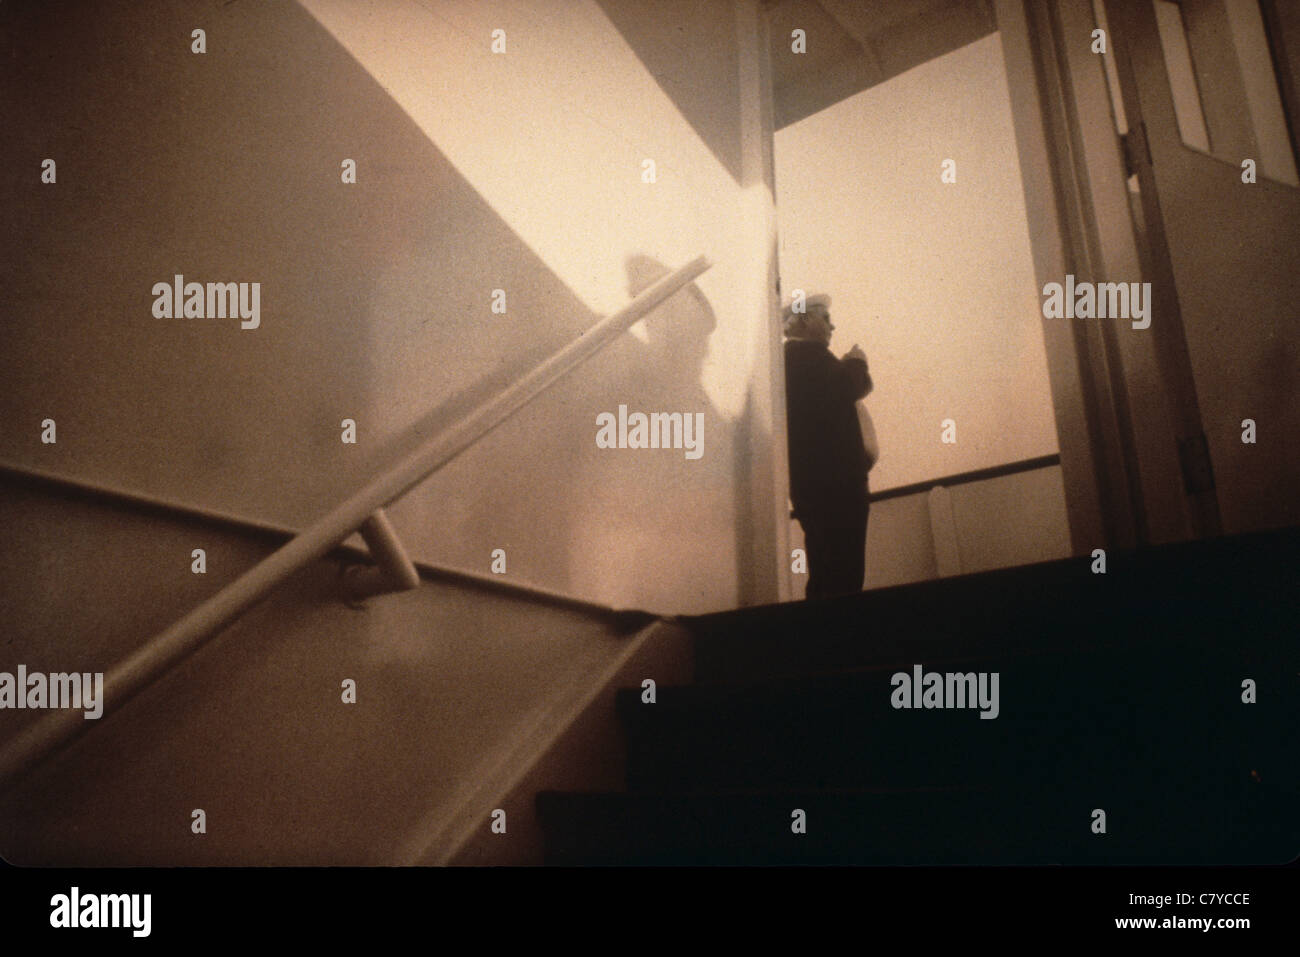 man at top of stairs with wall shadow - Stock Image